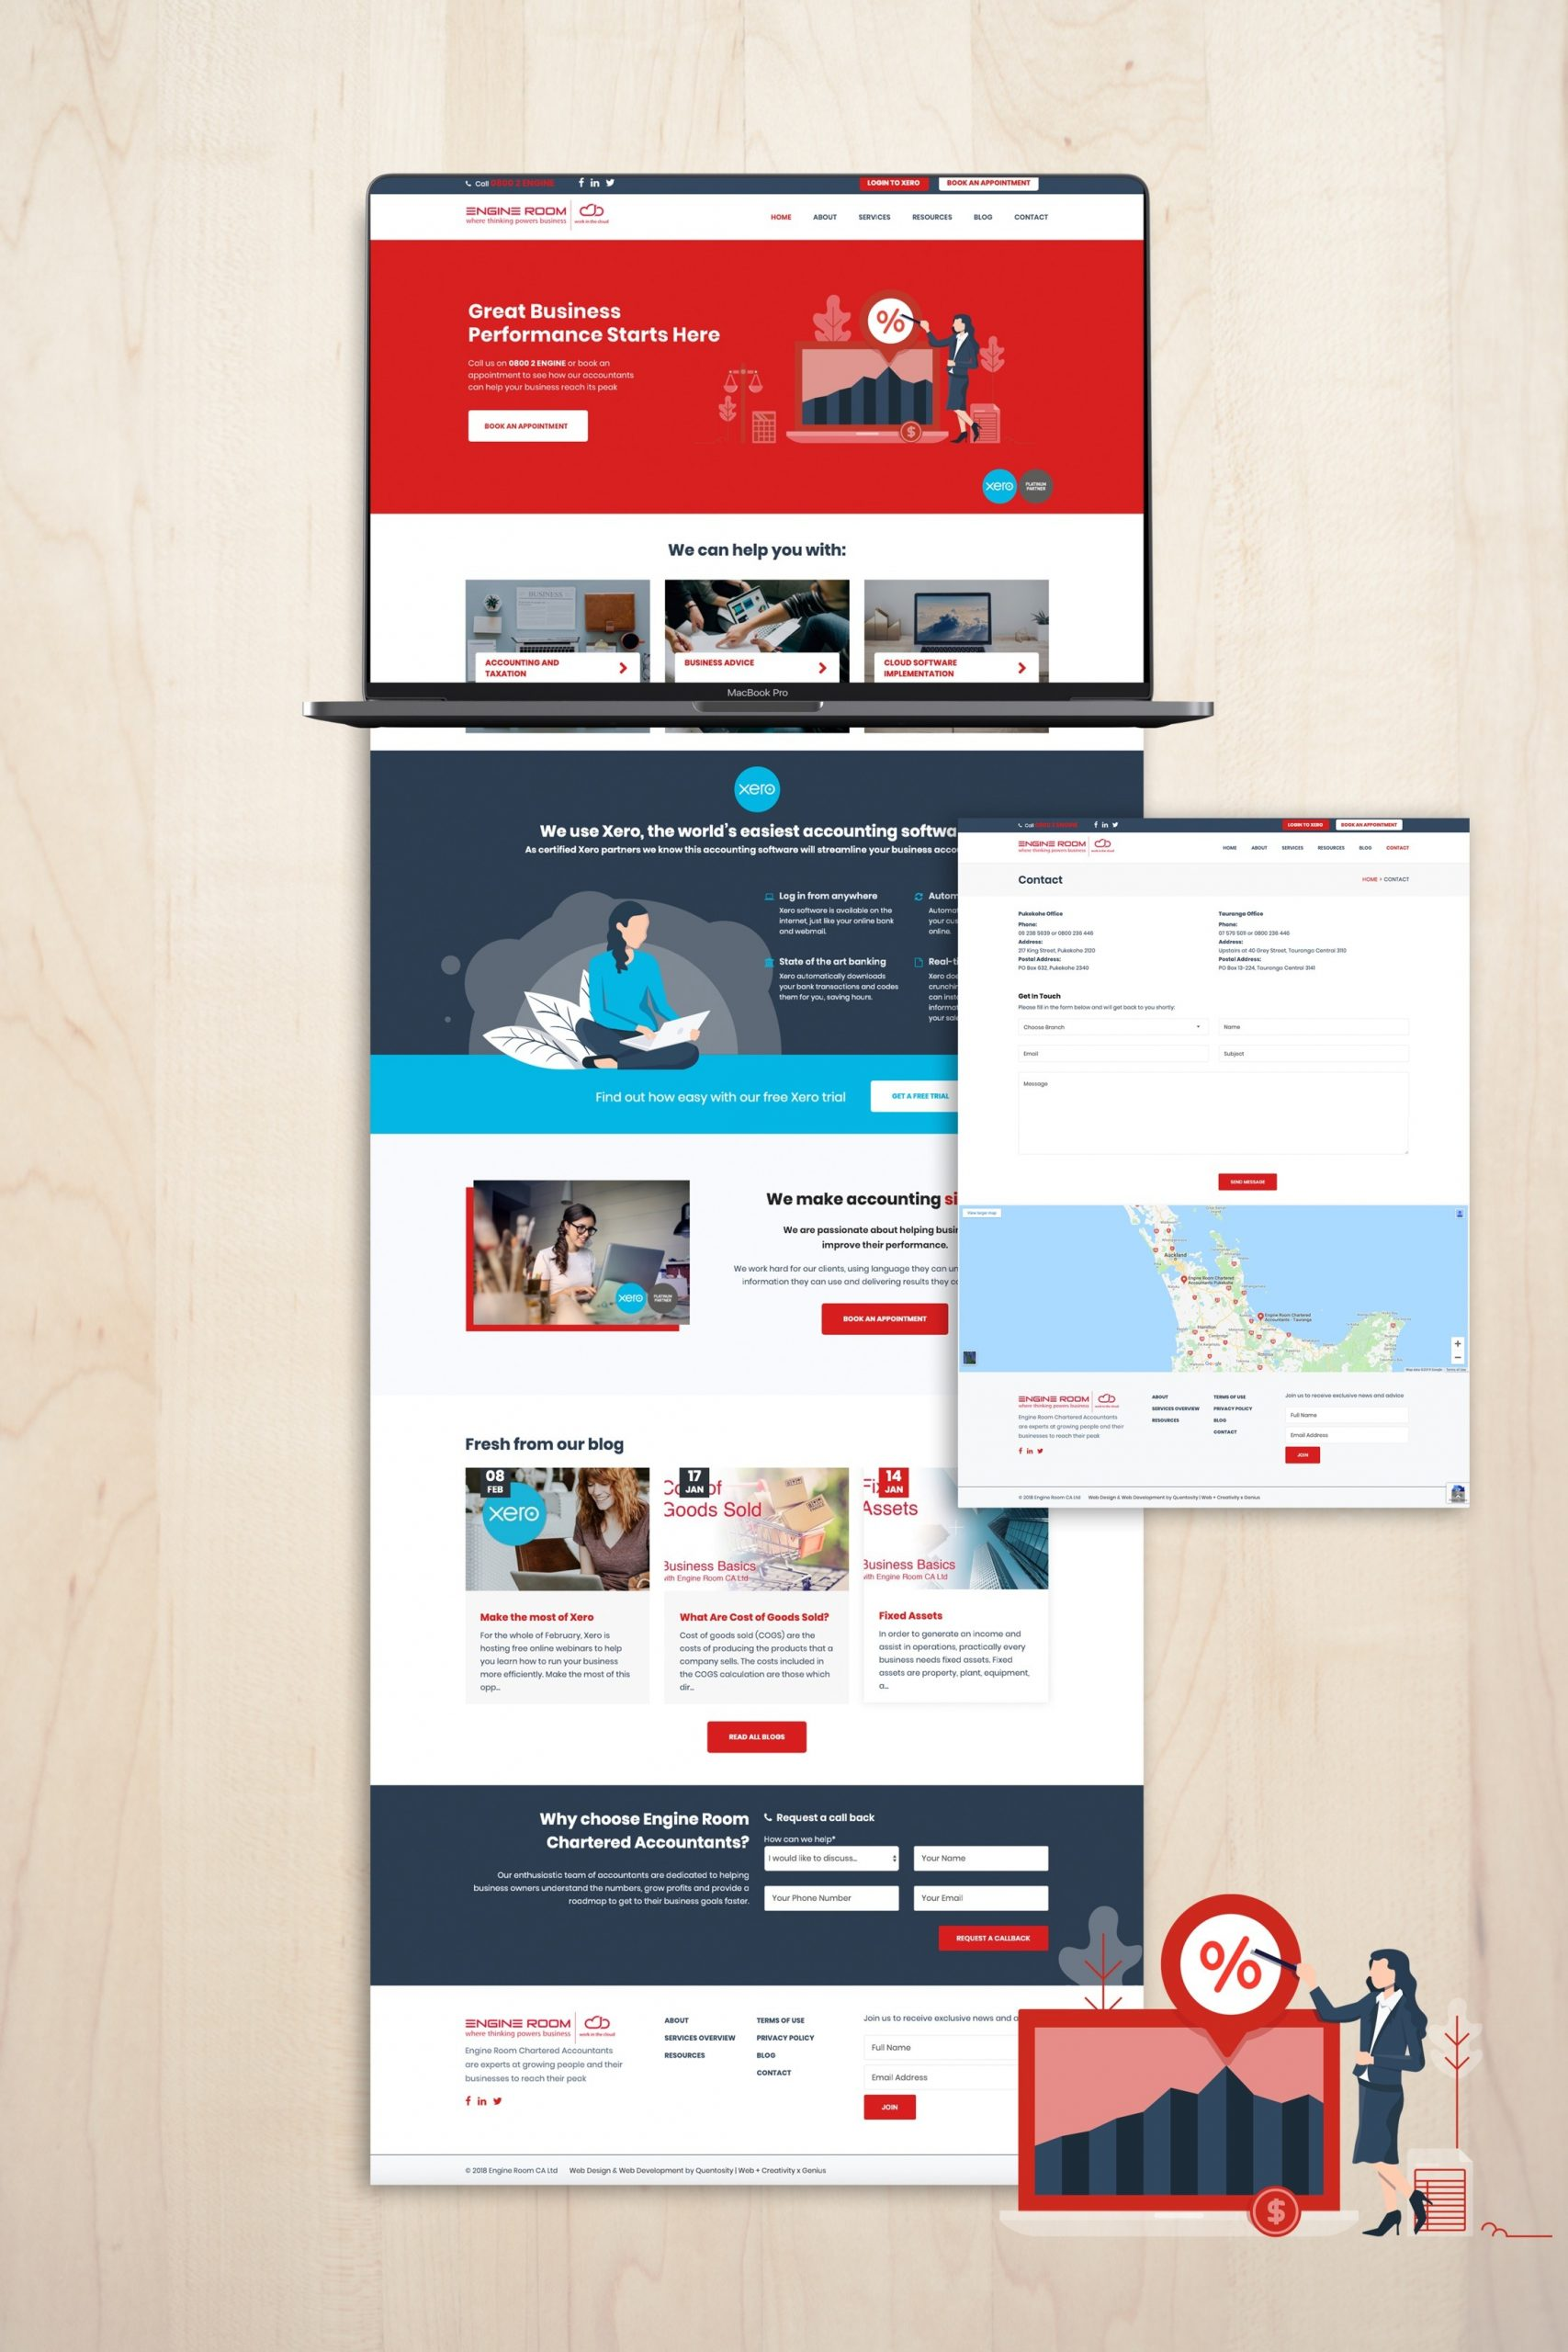 The Engine Room Design: Auckland Web Design & Web Development